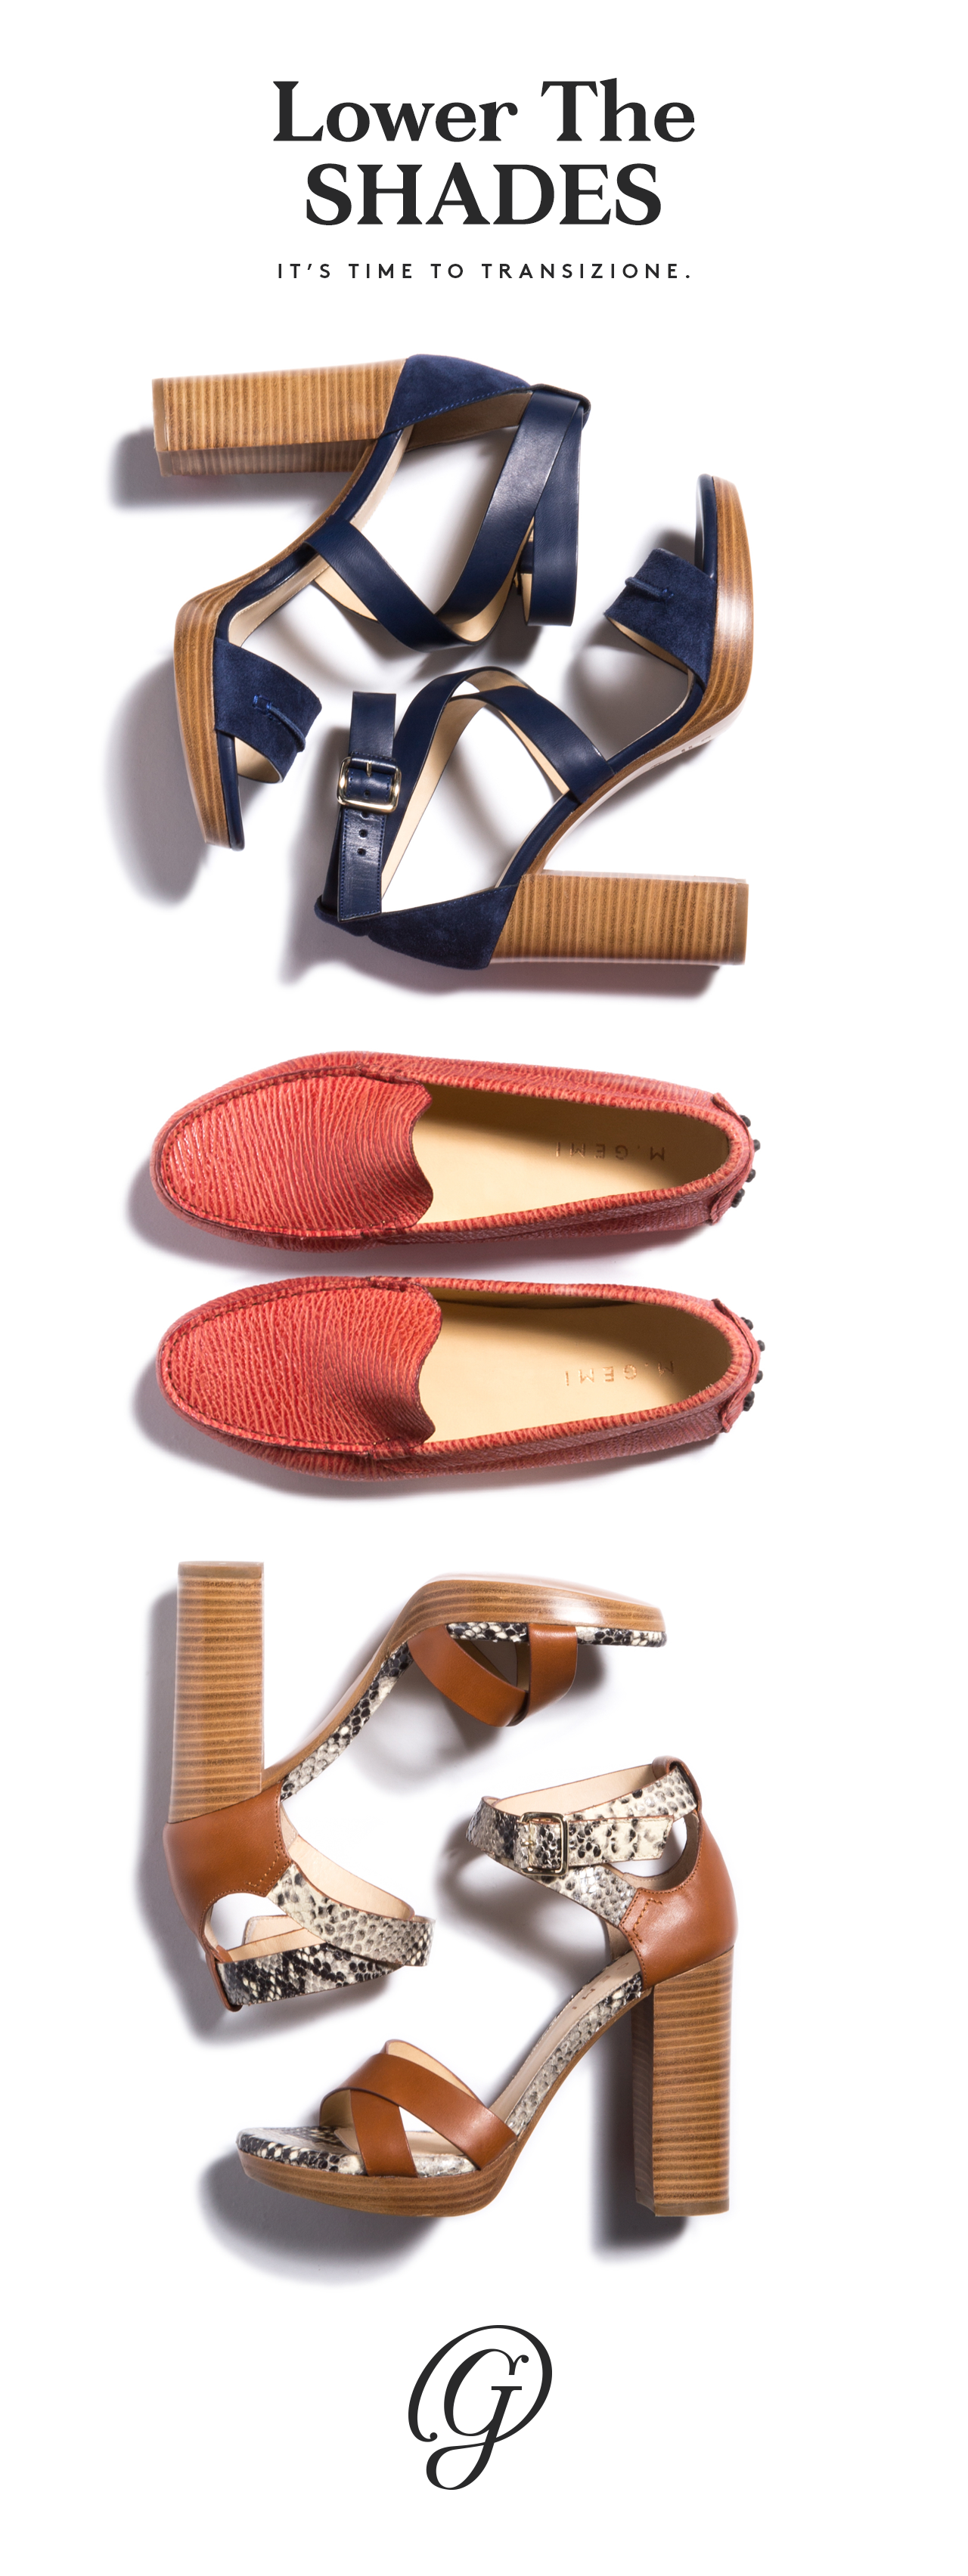 Easing deeper shades into your wardrobe is the best way to warm up to cooling weather. We're starting with a navy platform sandal, a ruby red moccasin, and a luggage and snake-print stacked heel. Shop our Lower The Shades story.